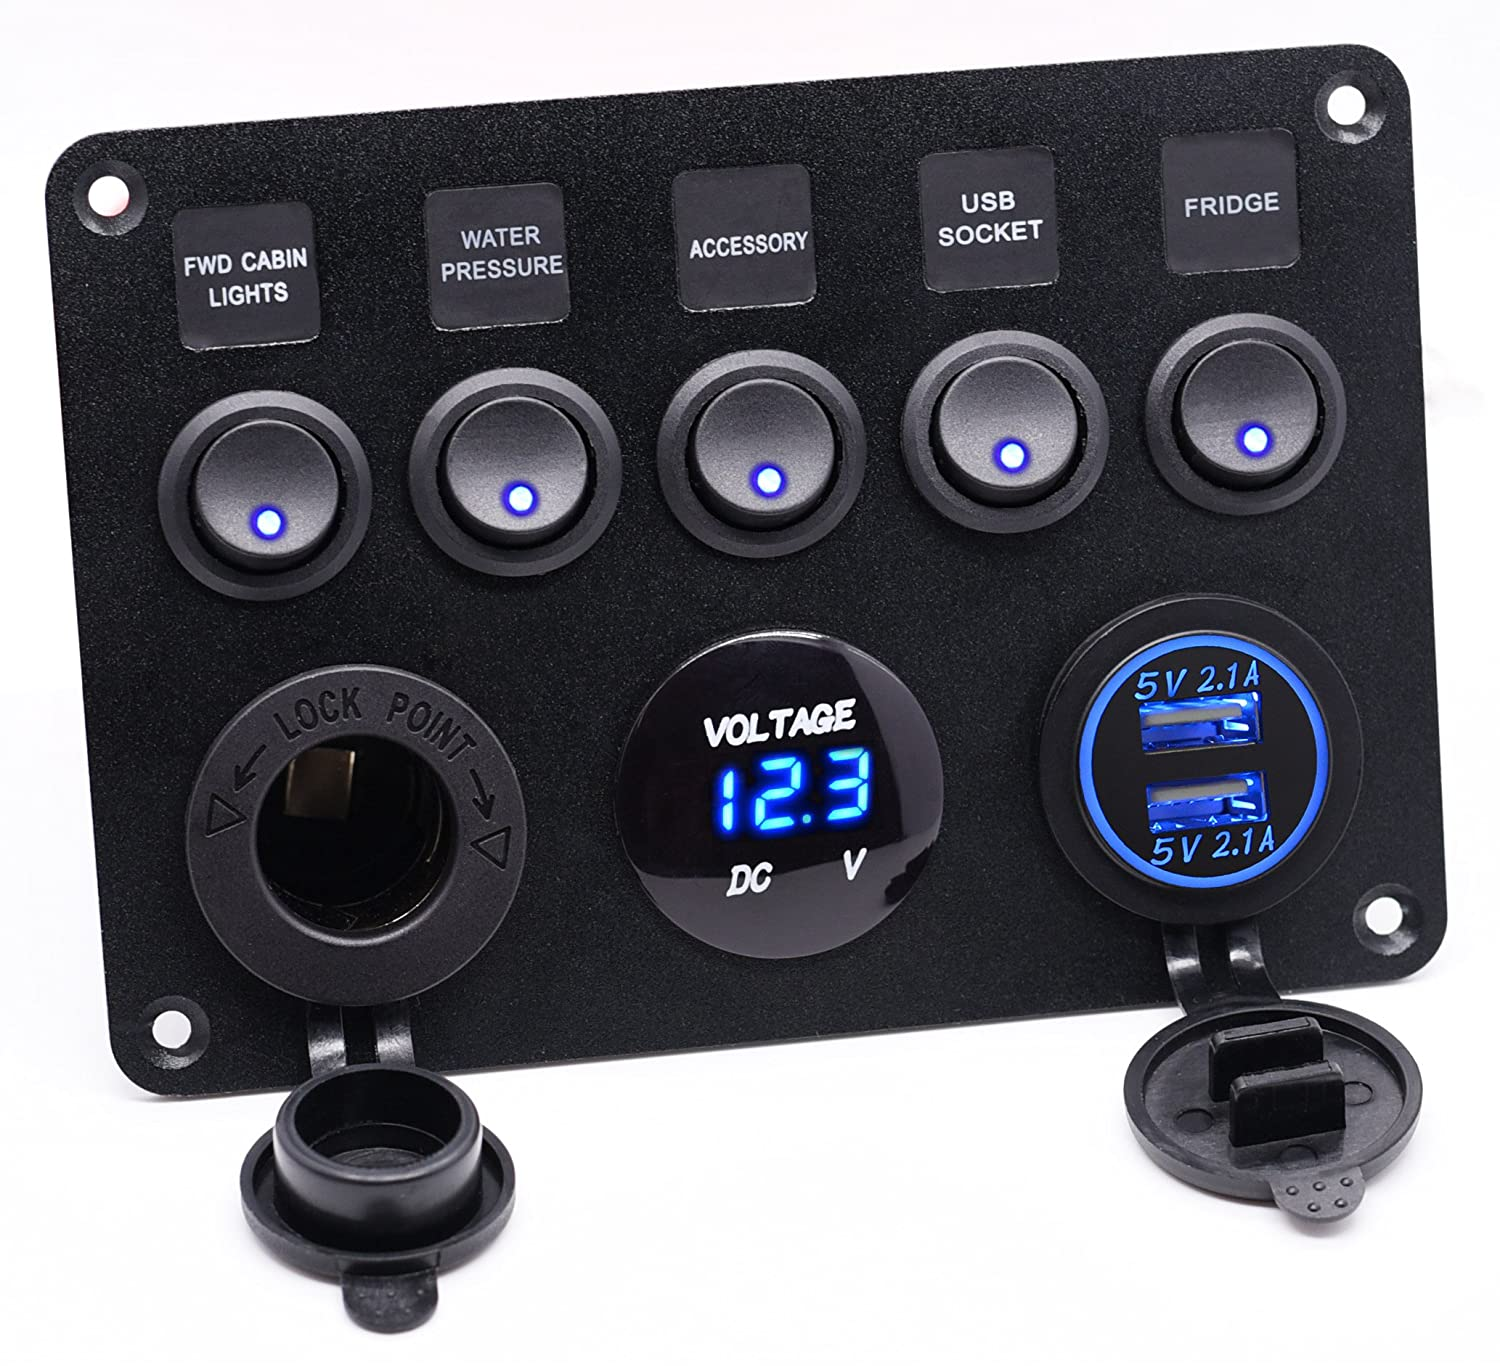 Cllena Dual Usb Socket Charger 21a21a Led Voltmeter 4 Gang Meter Base Wiring Diagram 12v Power Outlet 5 On Off Toggle Switch Multi Functions Panel For Car Boat